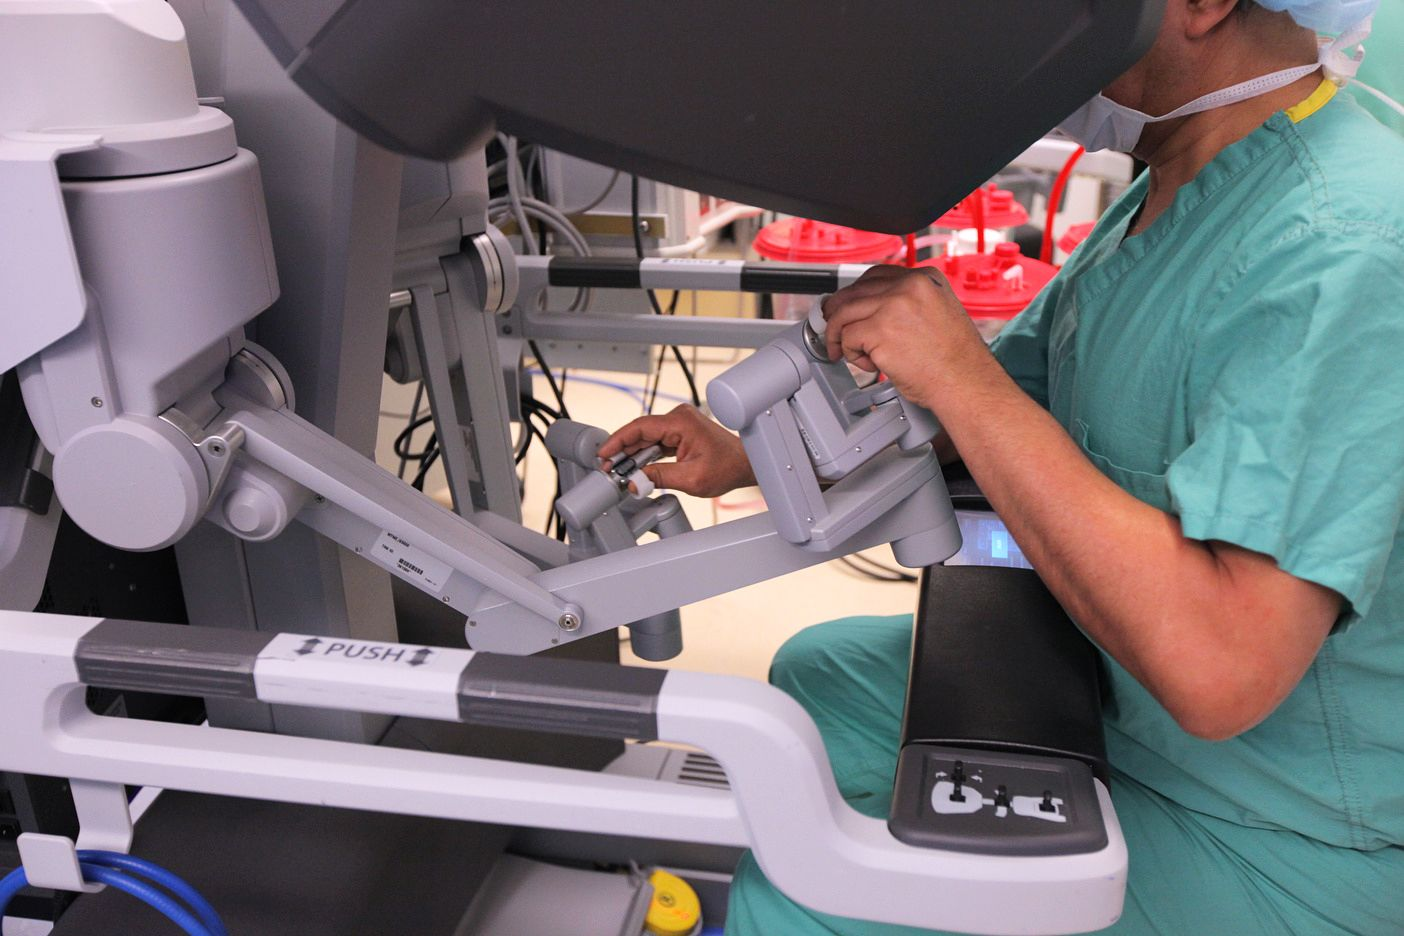 robotic, minimally invasive surgery